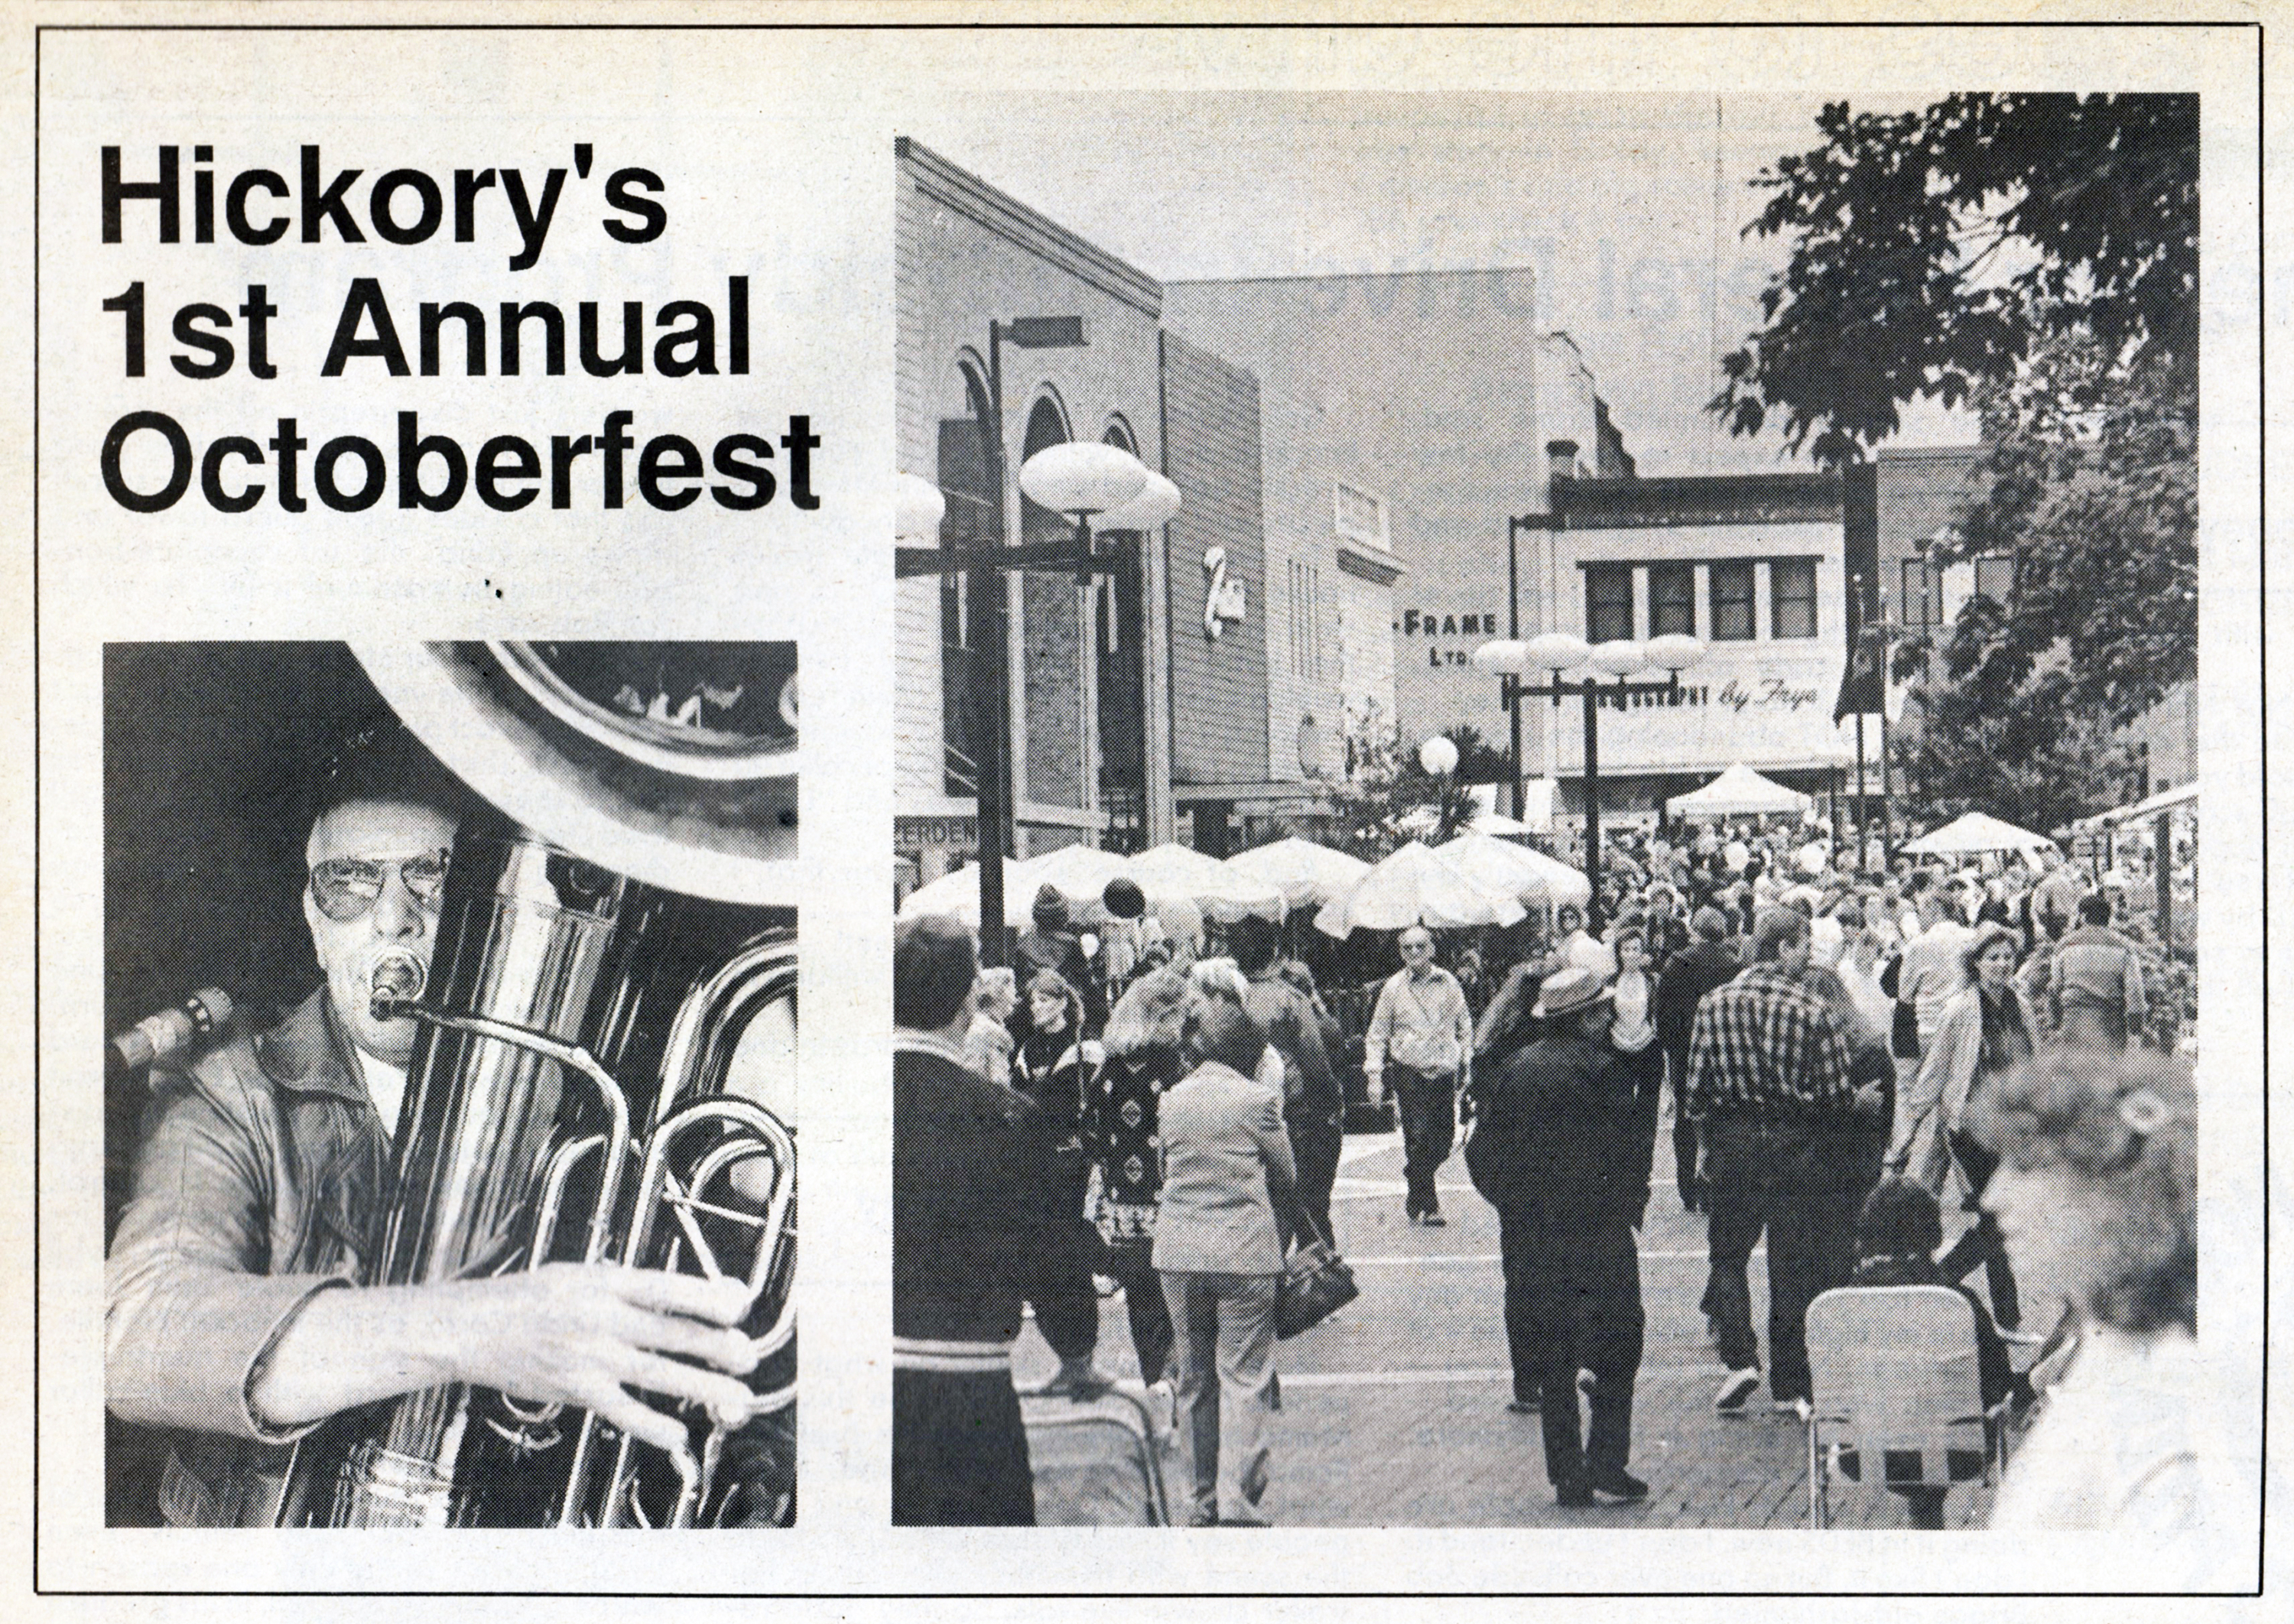 Photos from Hickory's 1st Annual Oktoberfest published October 16, 1986.